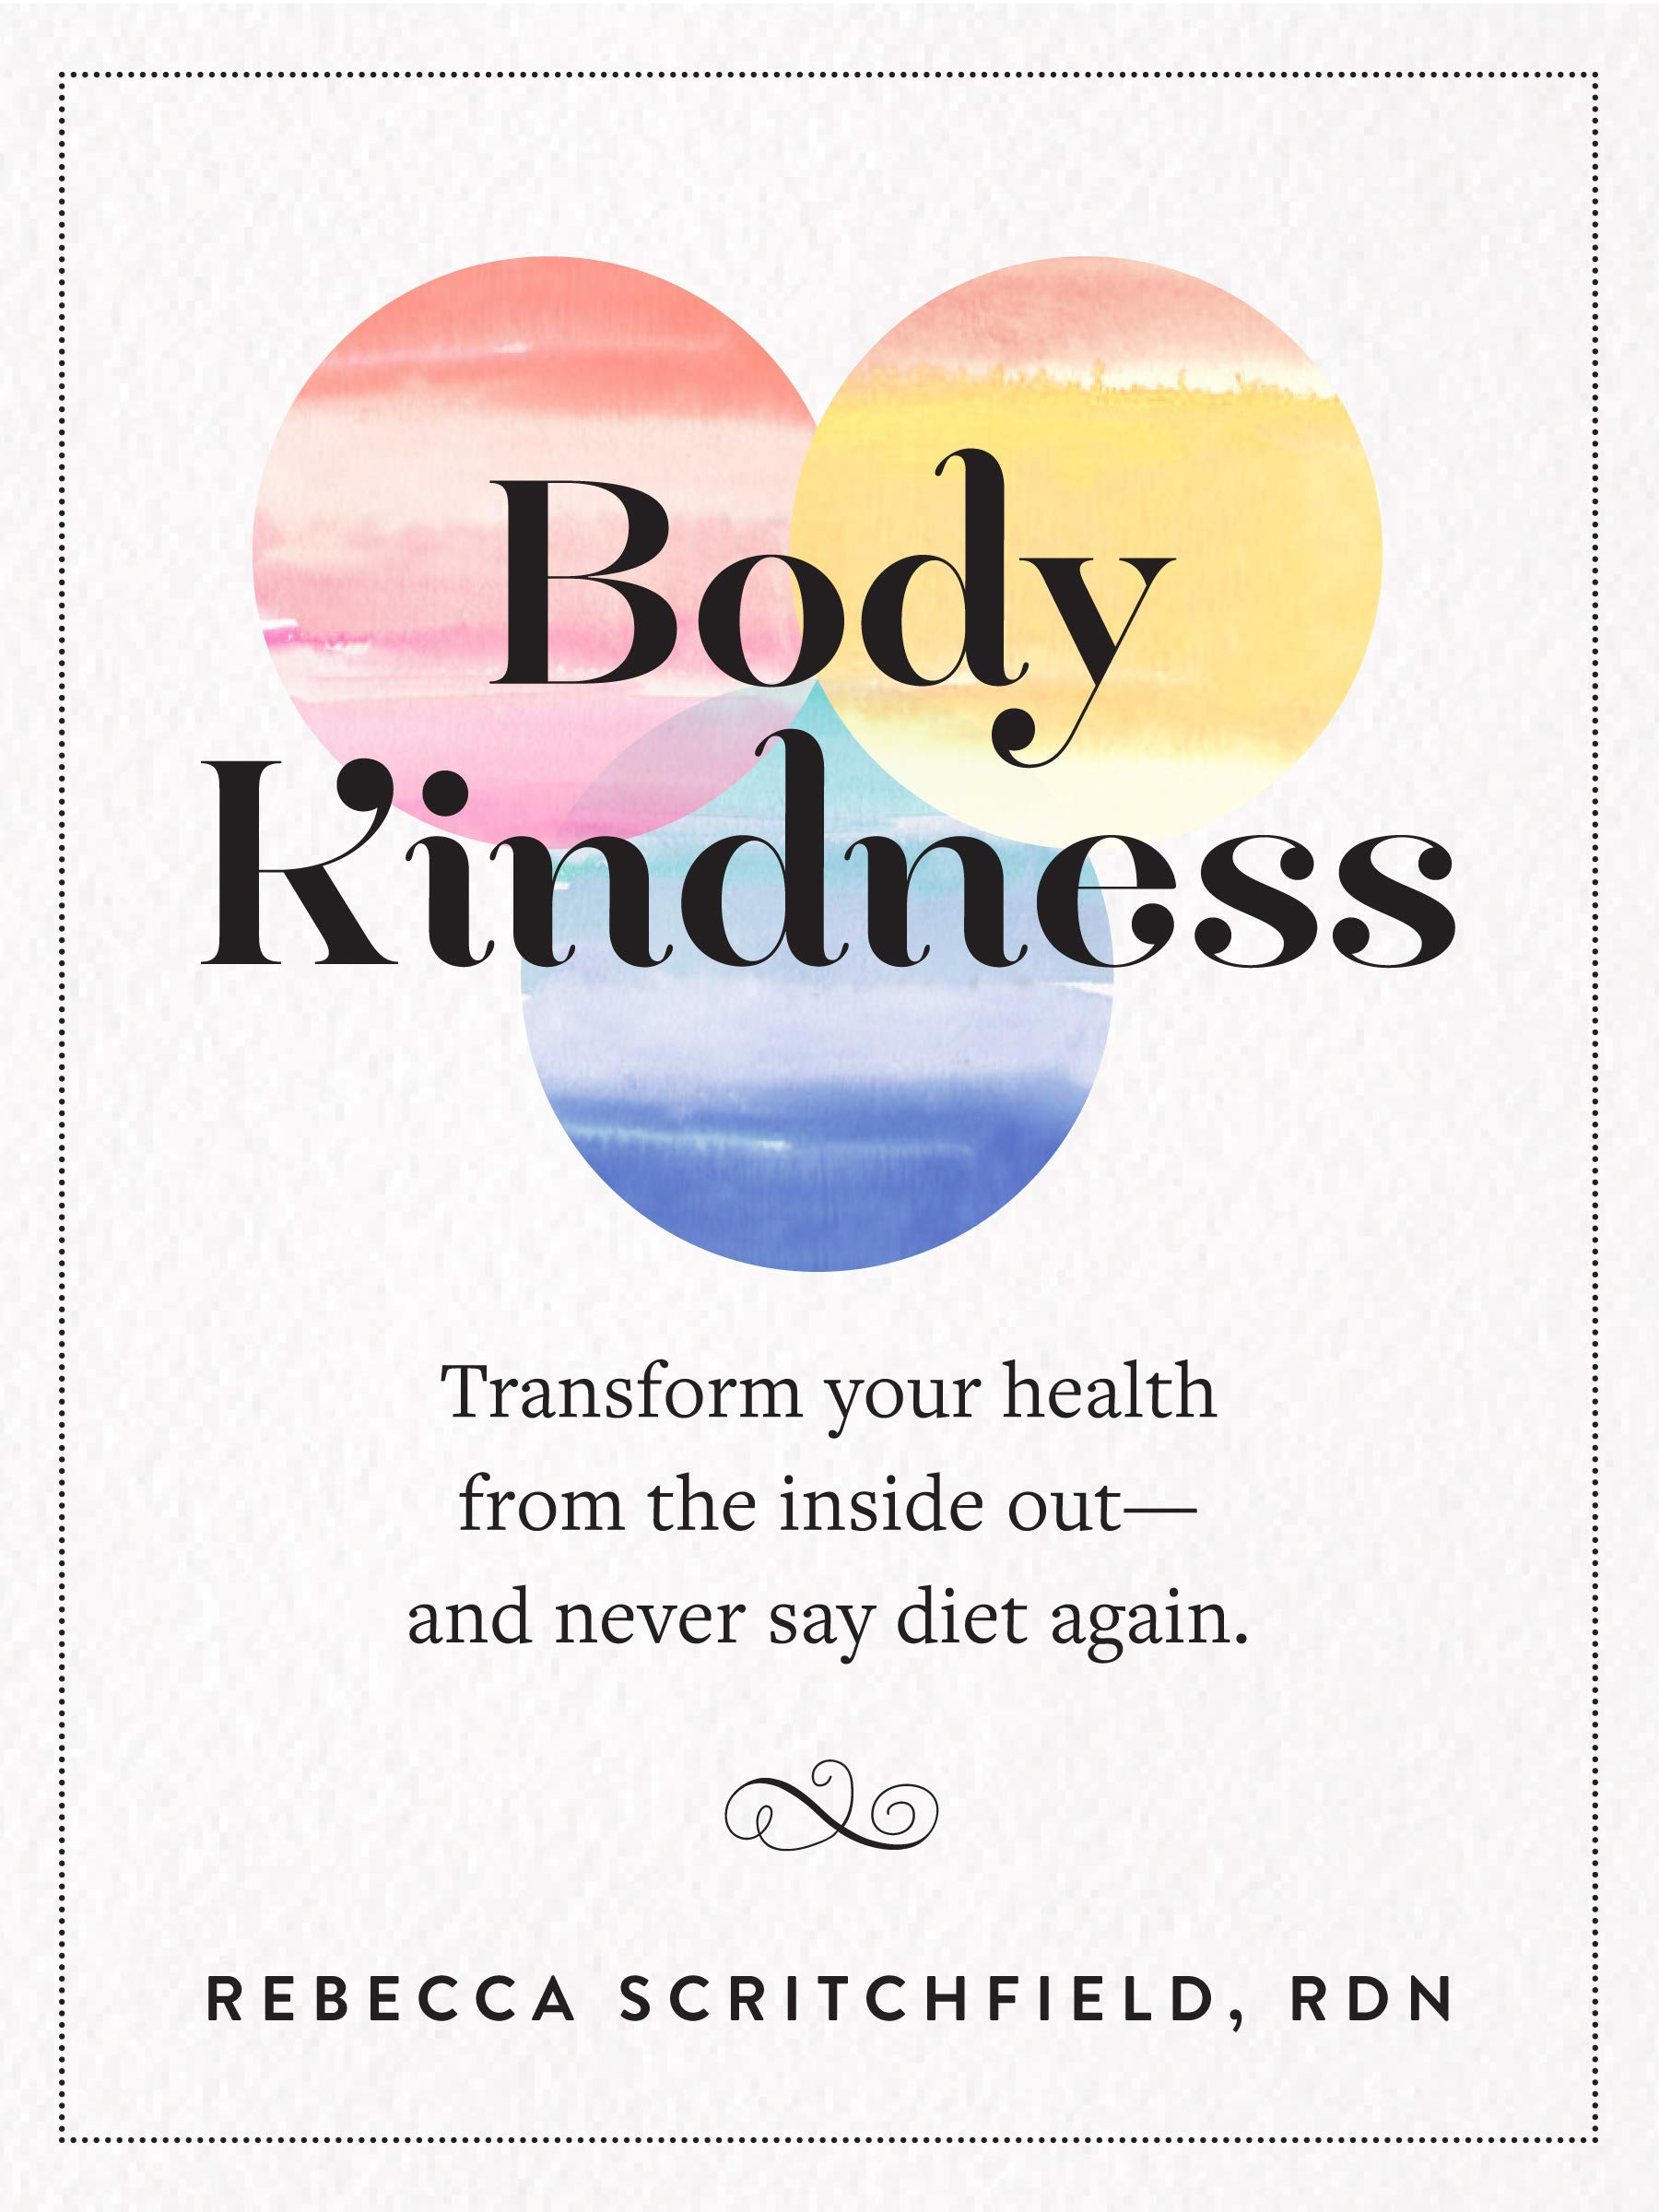 body kindness.jpg